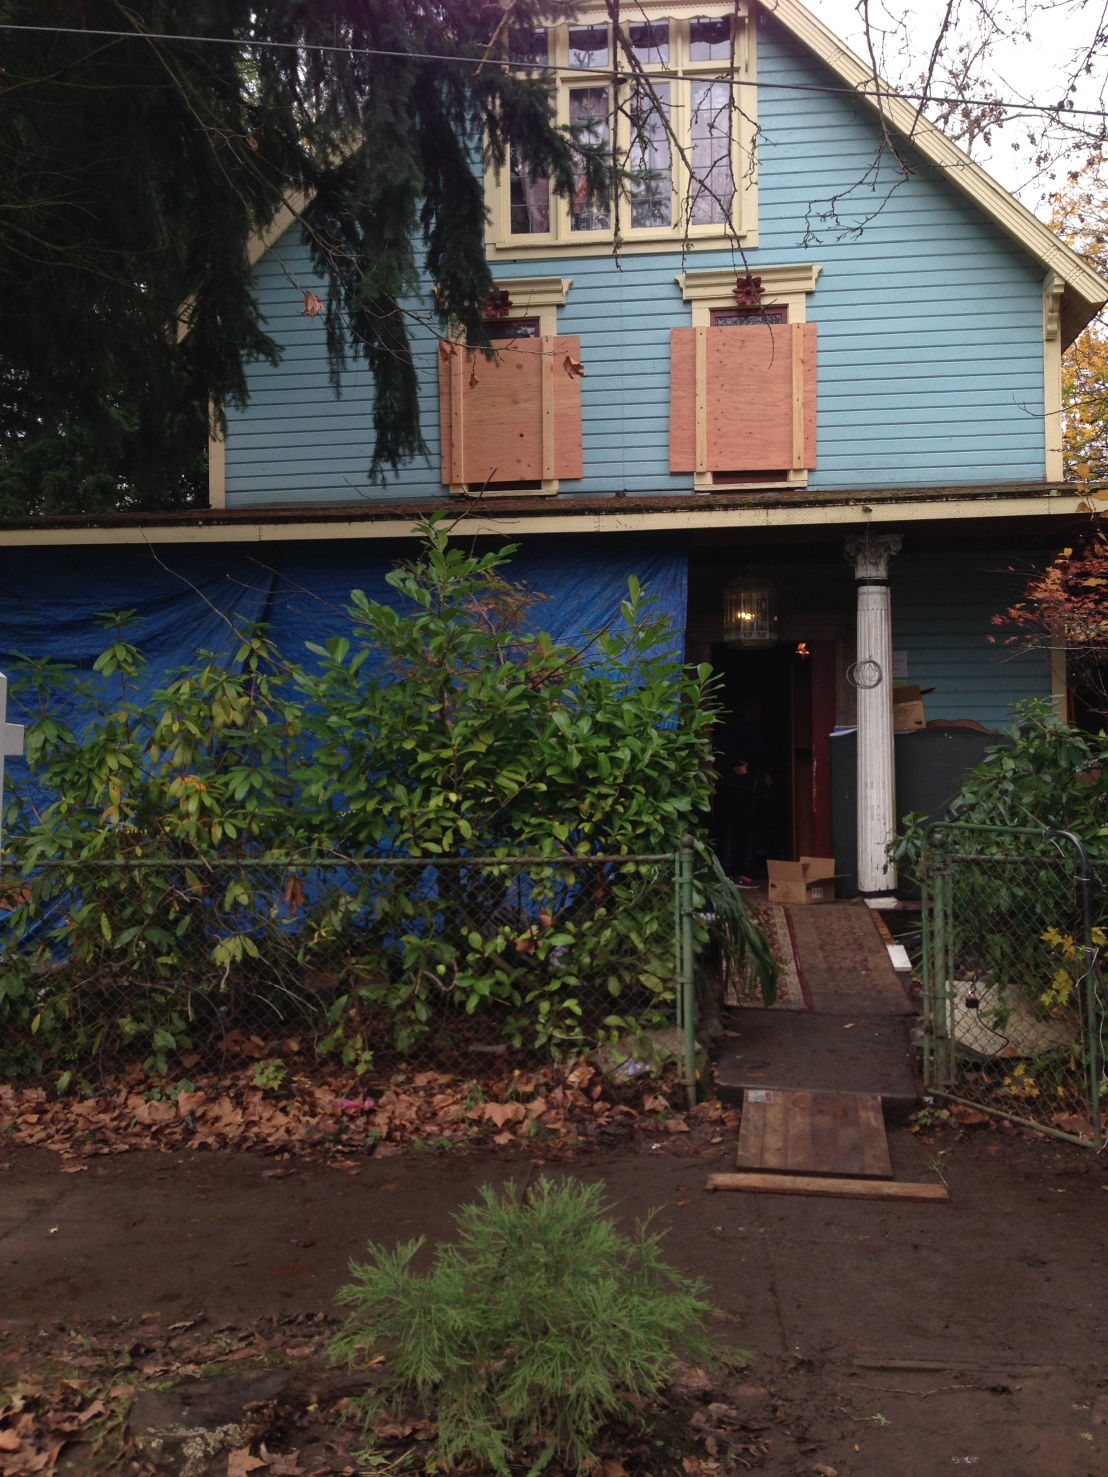 Preview: Behind the Scenes Hoarder House Estate Sale